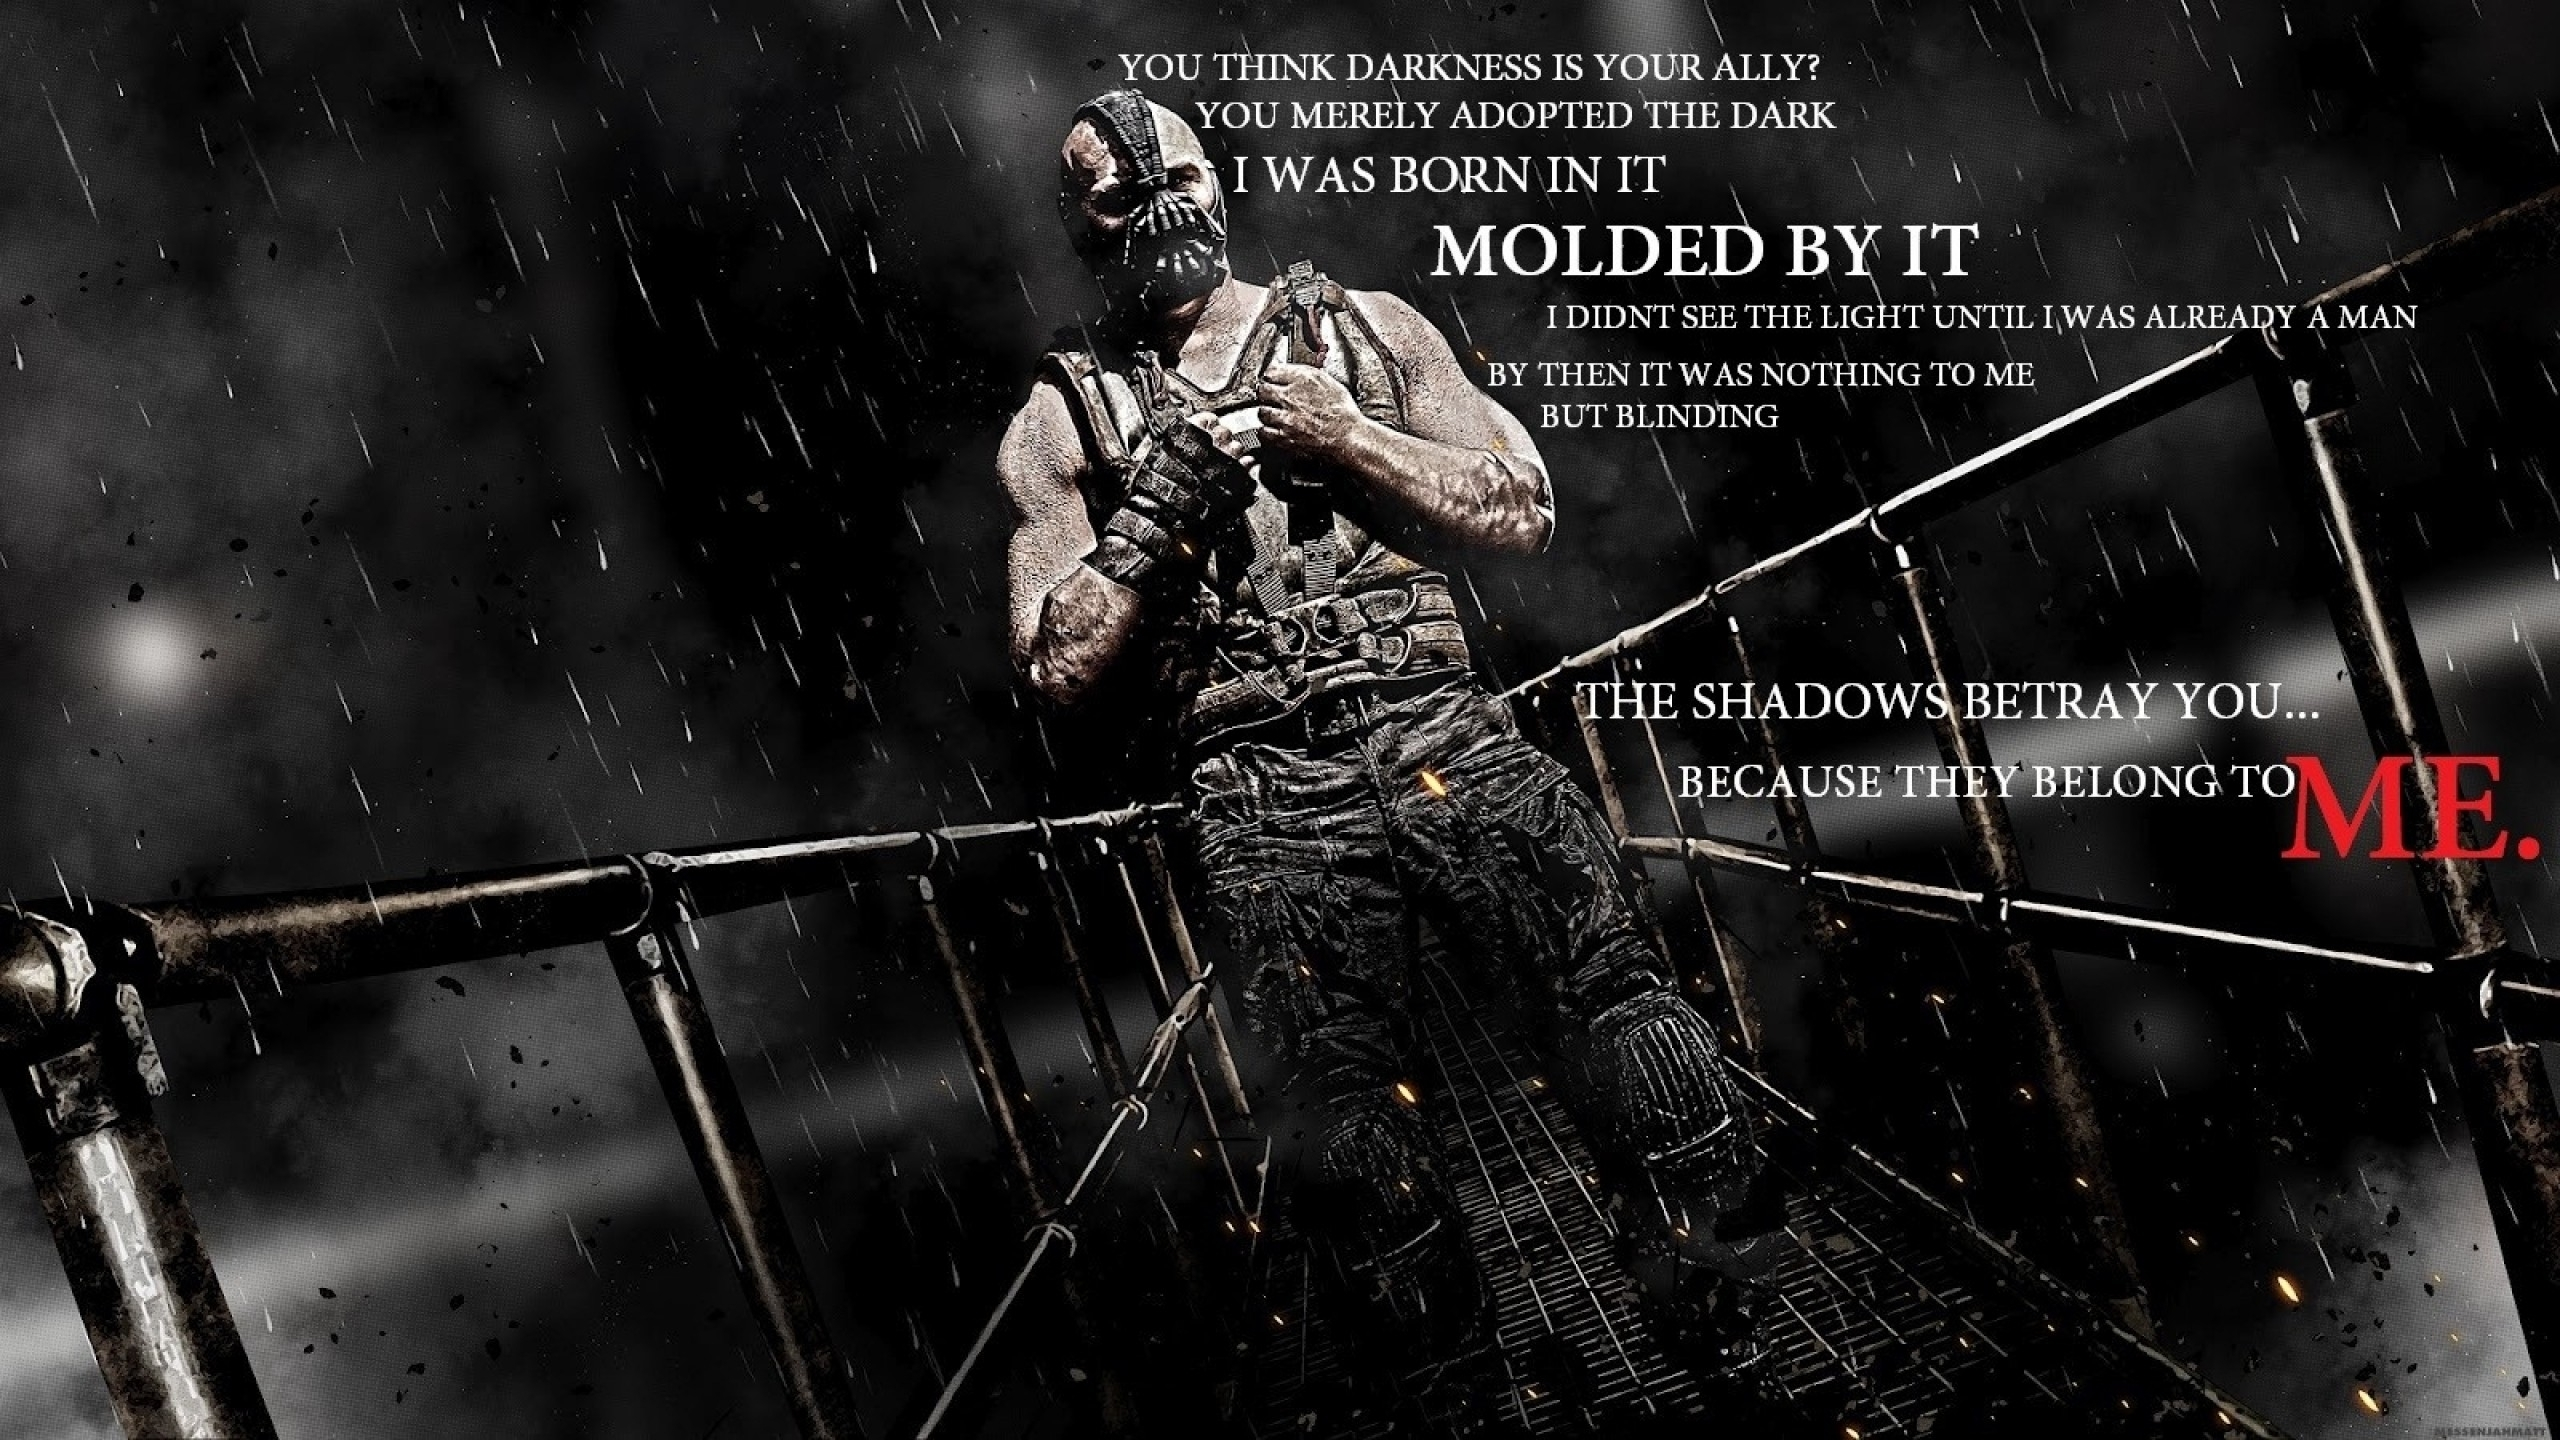 The Dark Knight Quotes: Quotes Shadows Typography Darkness Bane Tom Hardy Batman